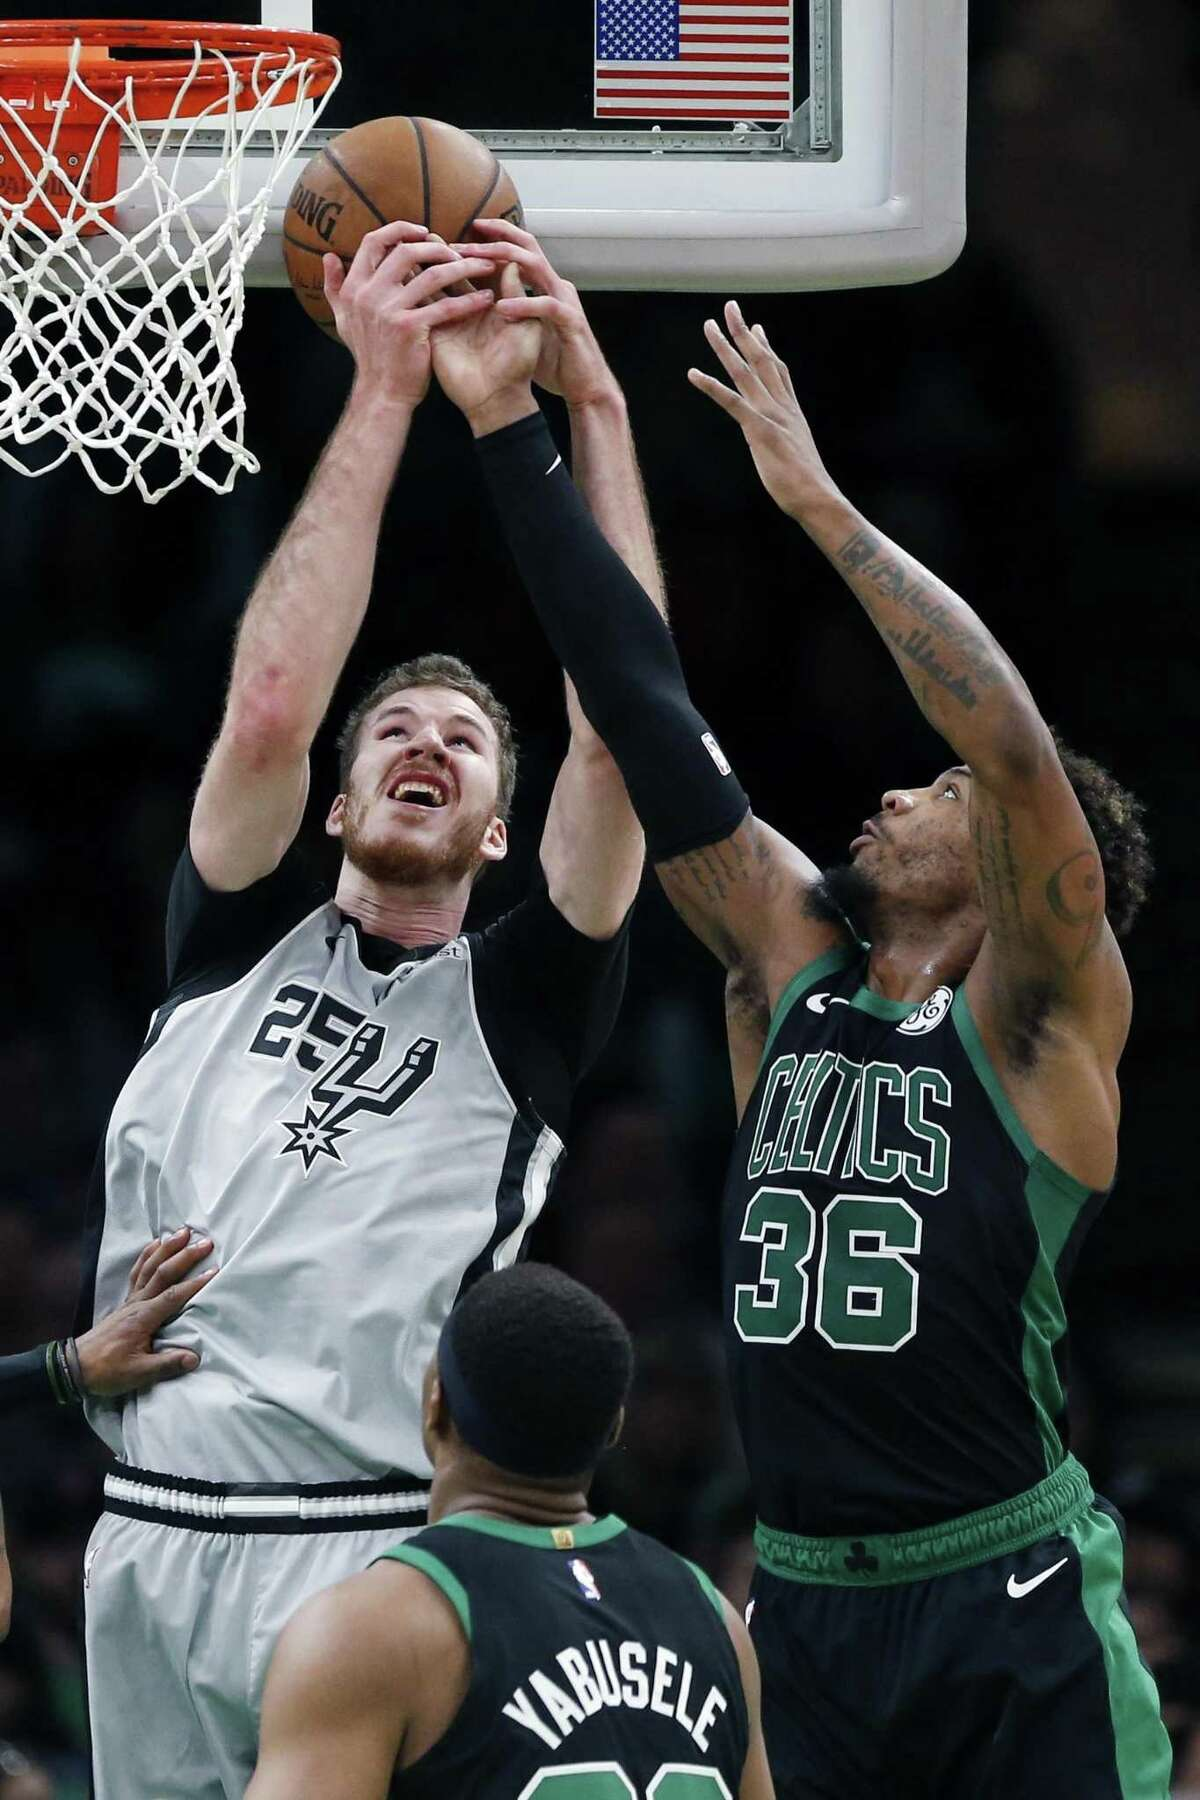 San Antonio Spurs' Jakob Poeltl (25) and Boston Celtics' Marcus Smart (36) vie for a rebound during the first half of an NBA basketball game in Boston, Sunday, March 24, 2019. (AP Photo/Michael Dwyer)